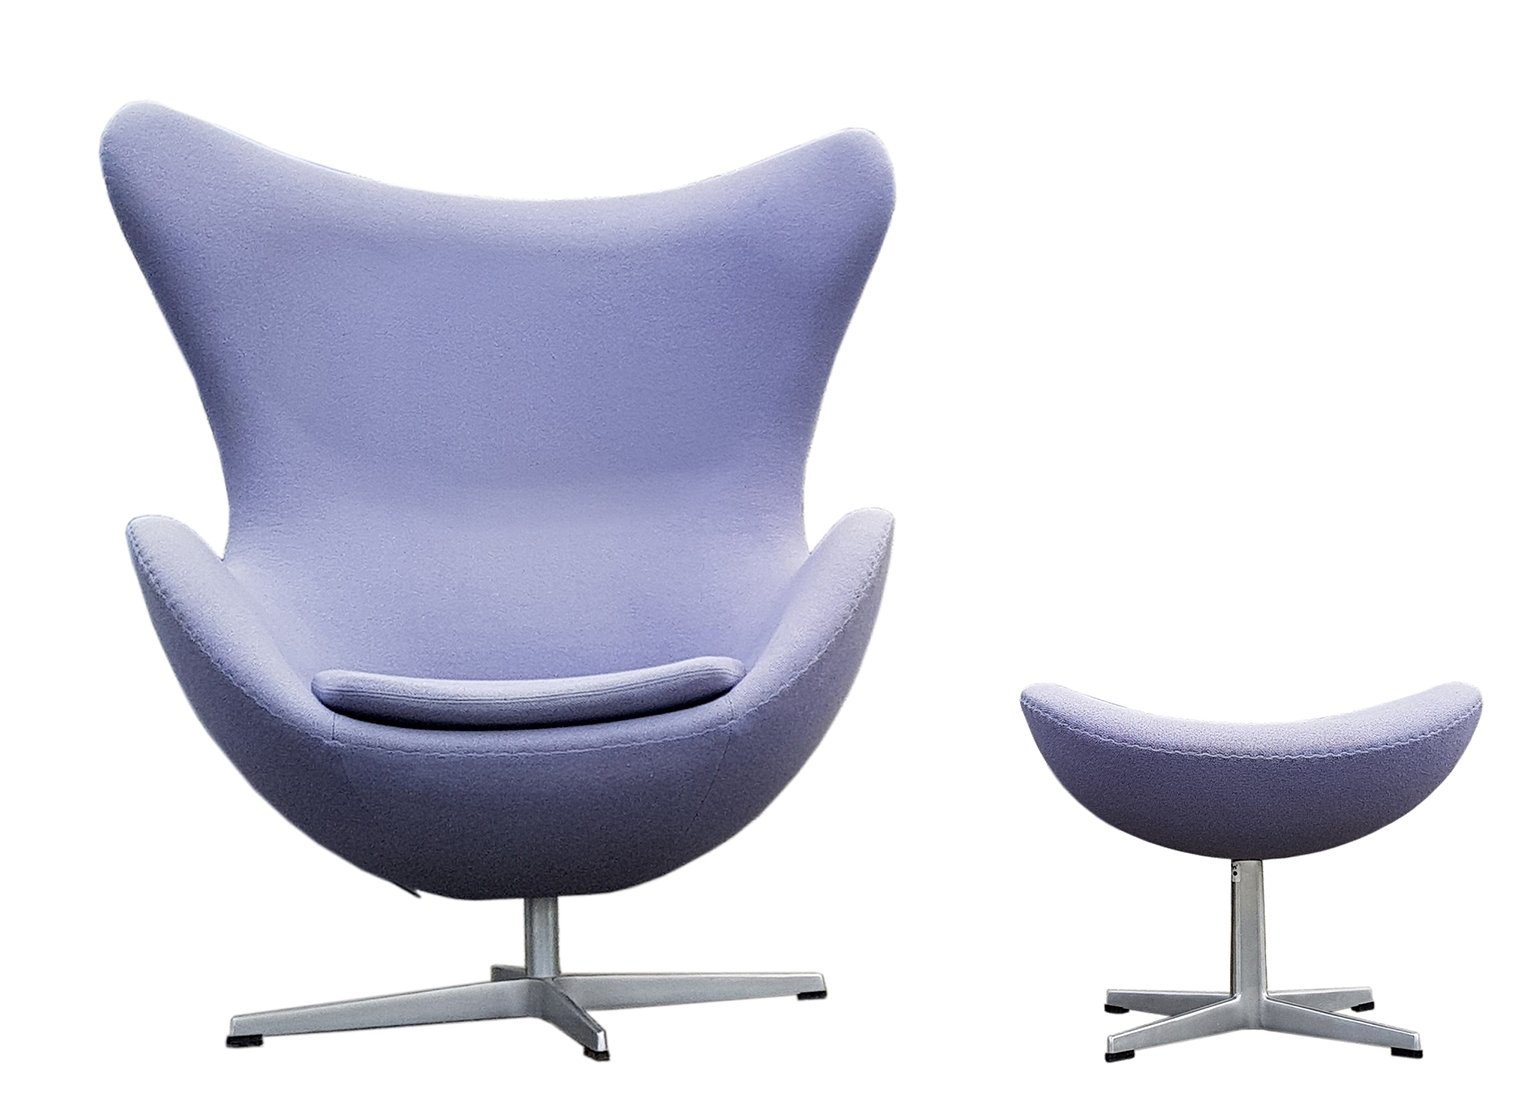 Iconic Arne Jacobsen Egg Chair Ottoman By Fritz Hansen Denmark 1999